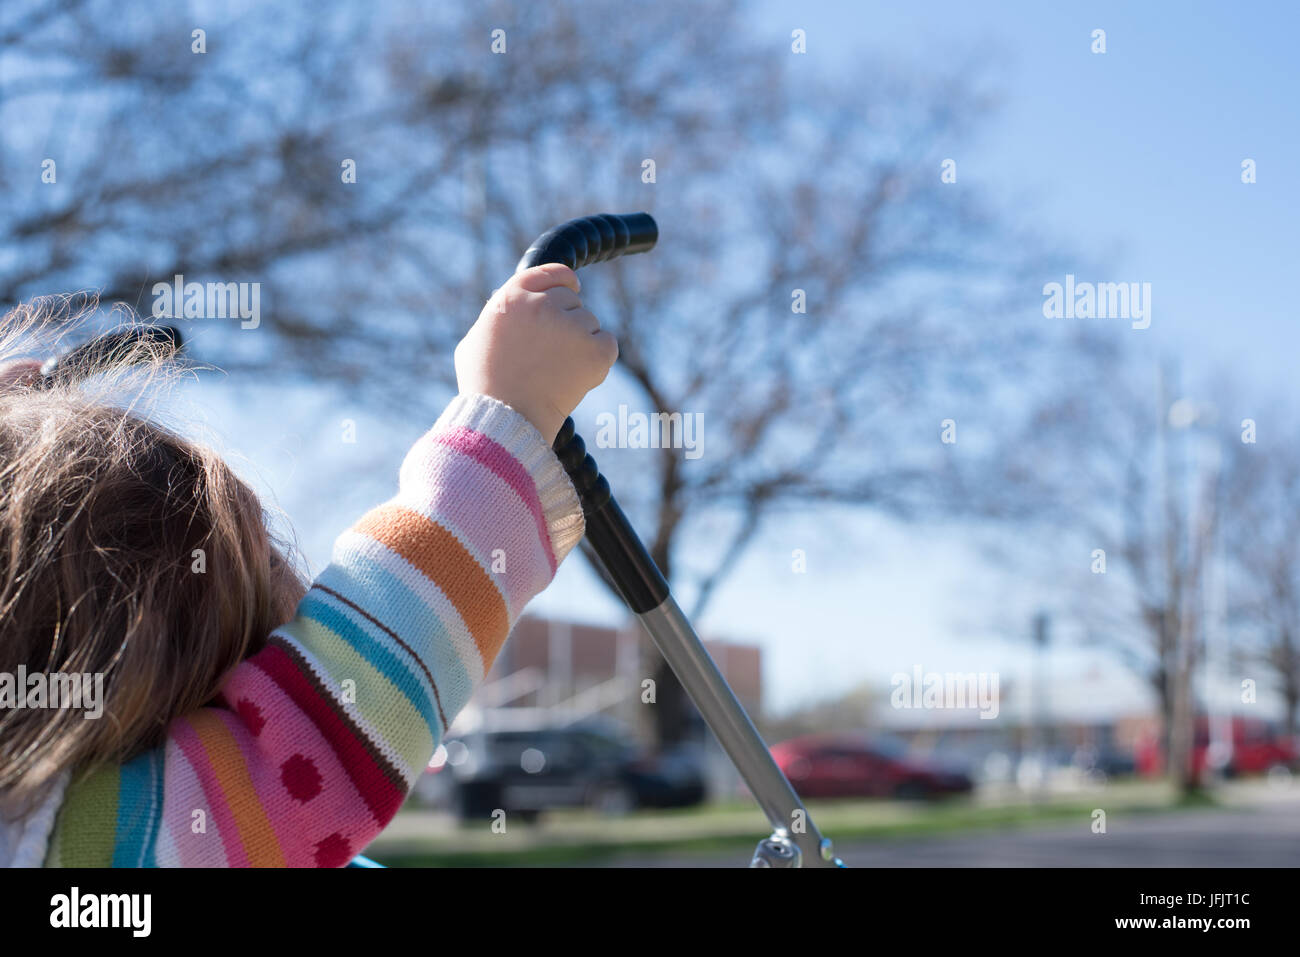 A little girl pushes a stroller with just her small hand and head visible. From behind. - Stock Image